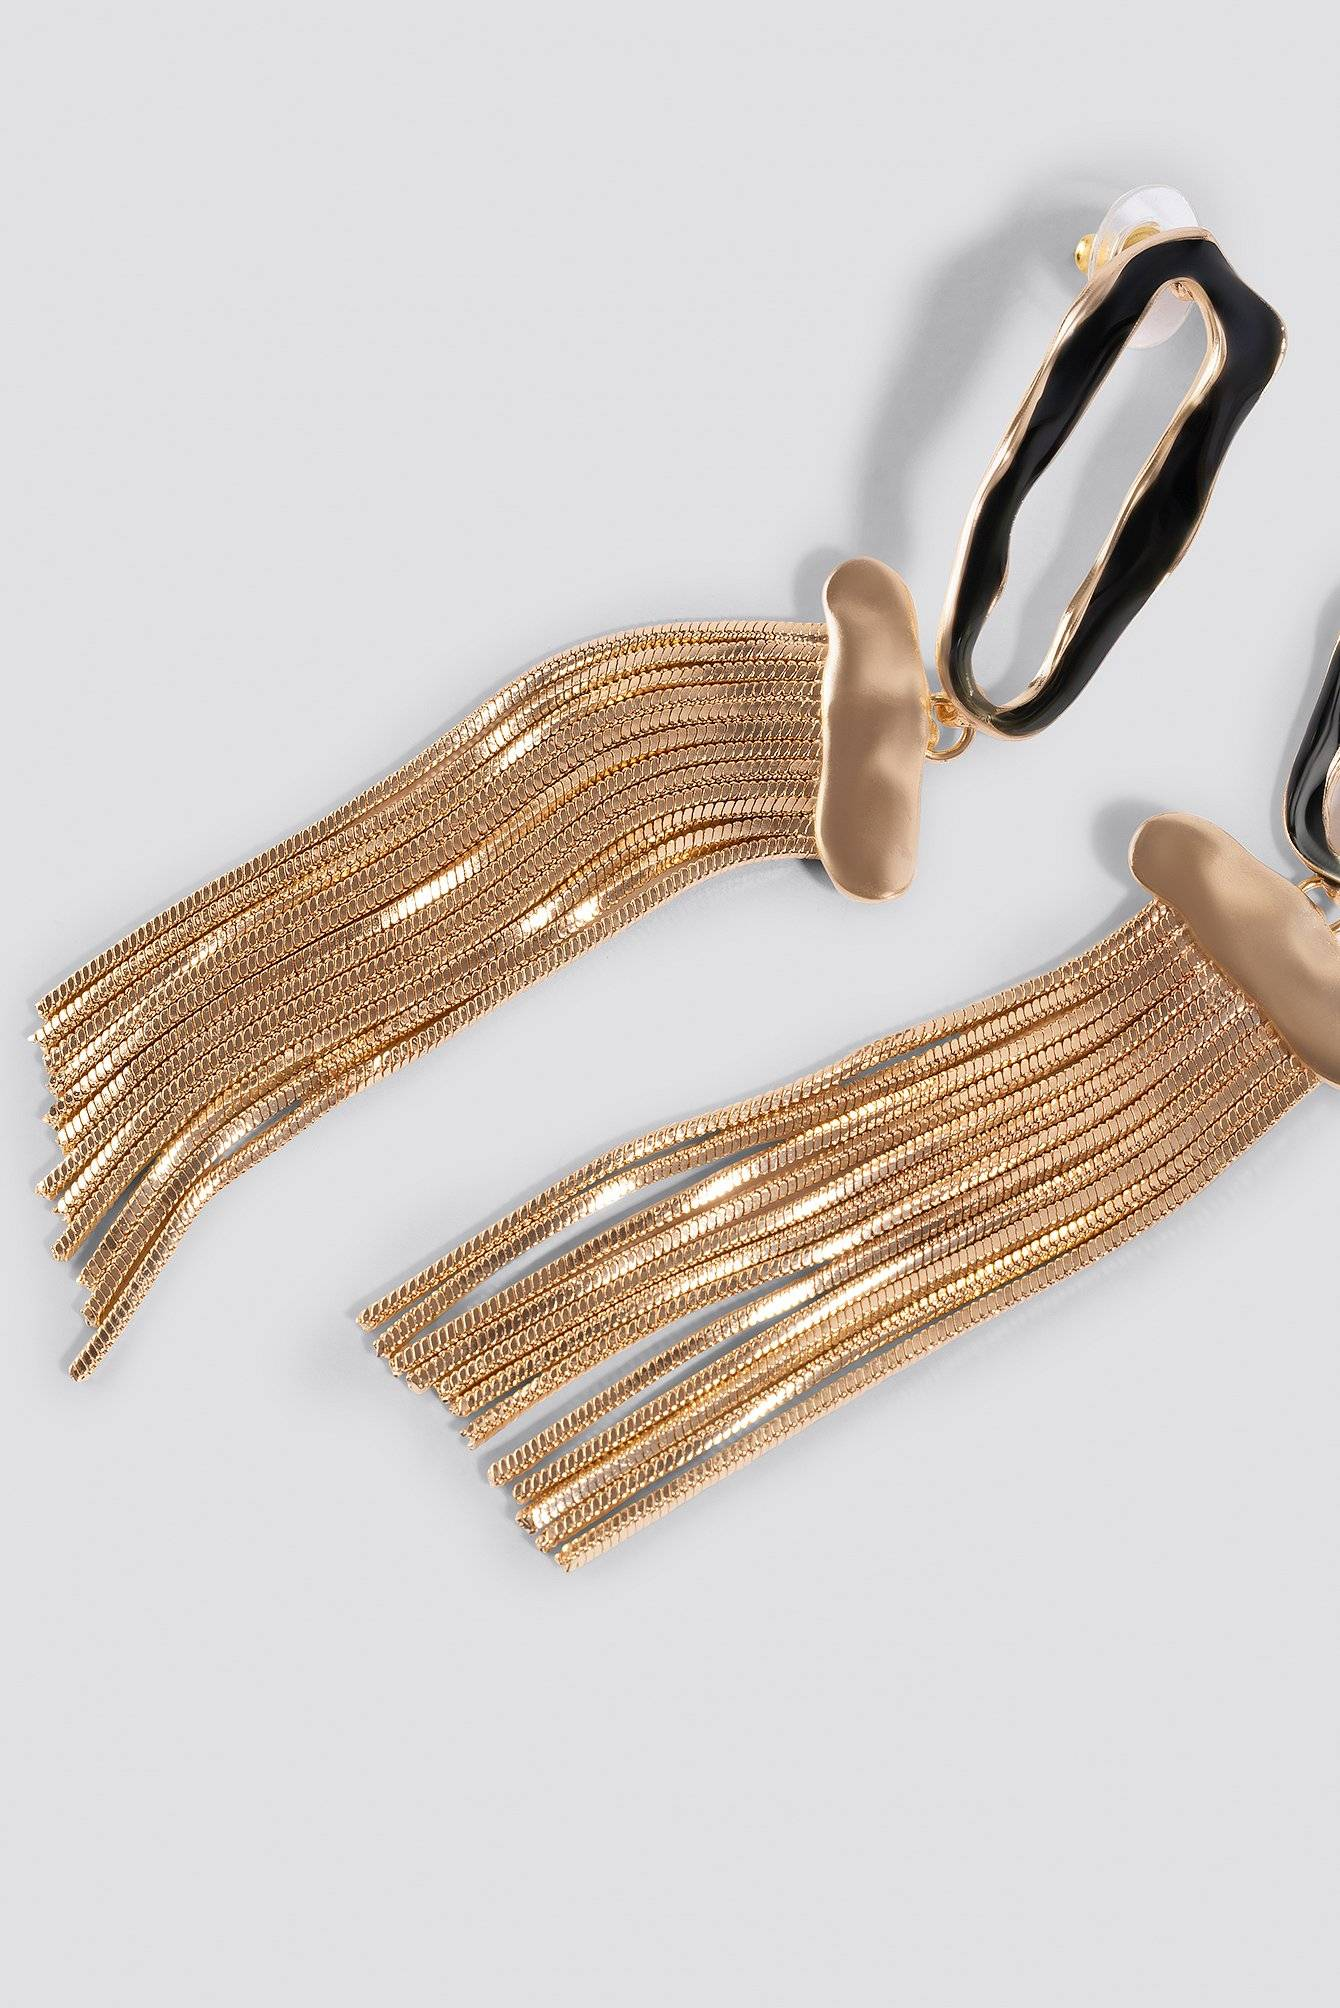 MANGO Glasgow Earrings - Black,Gold